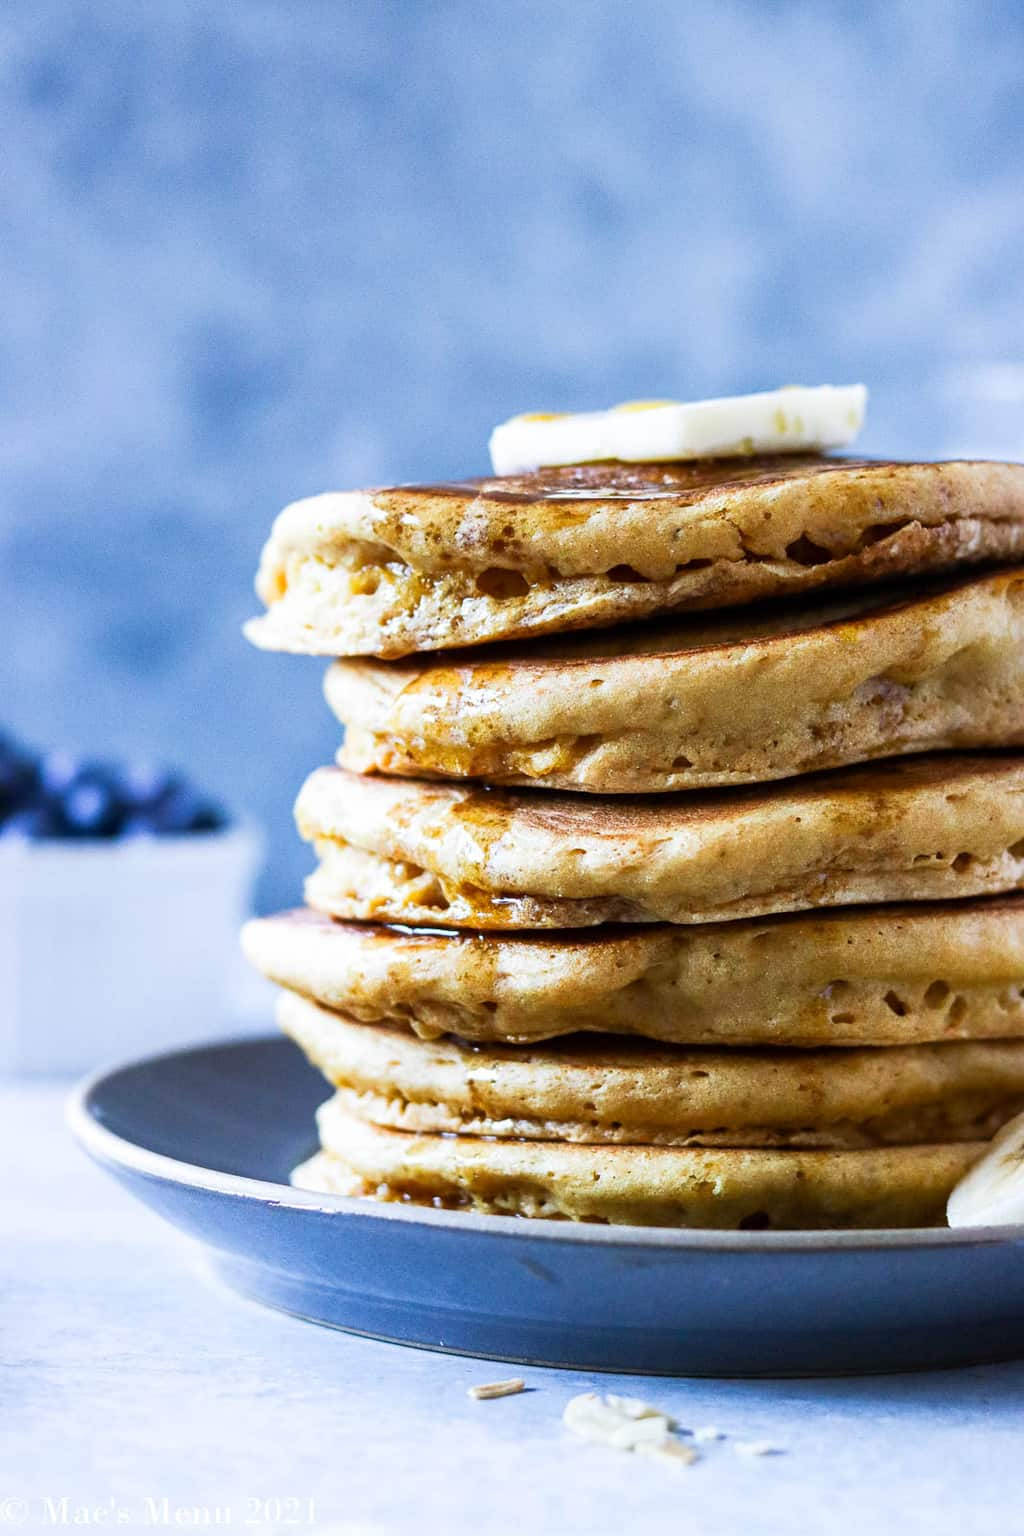 An up-close side shot of a stack of pancakes with butter and syrup dripping down the side